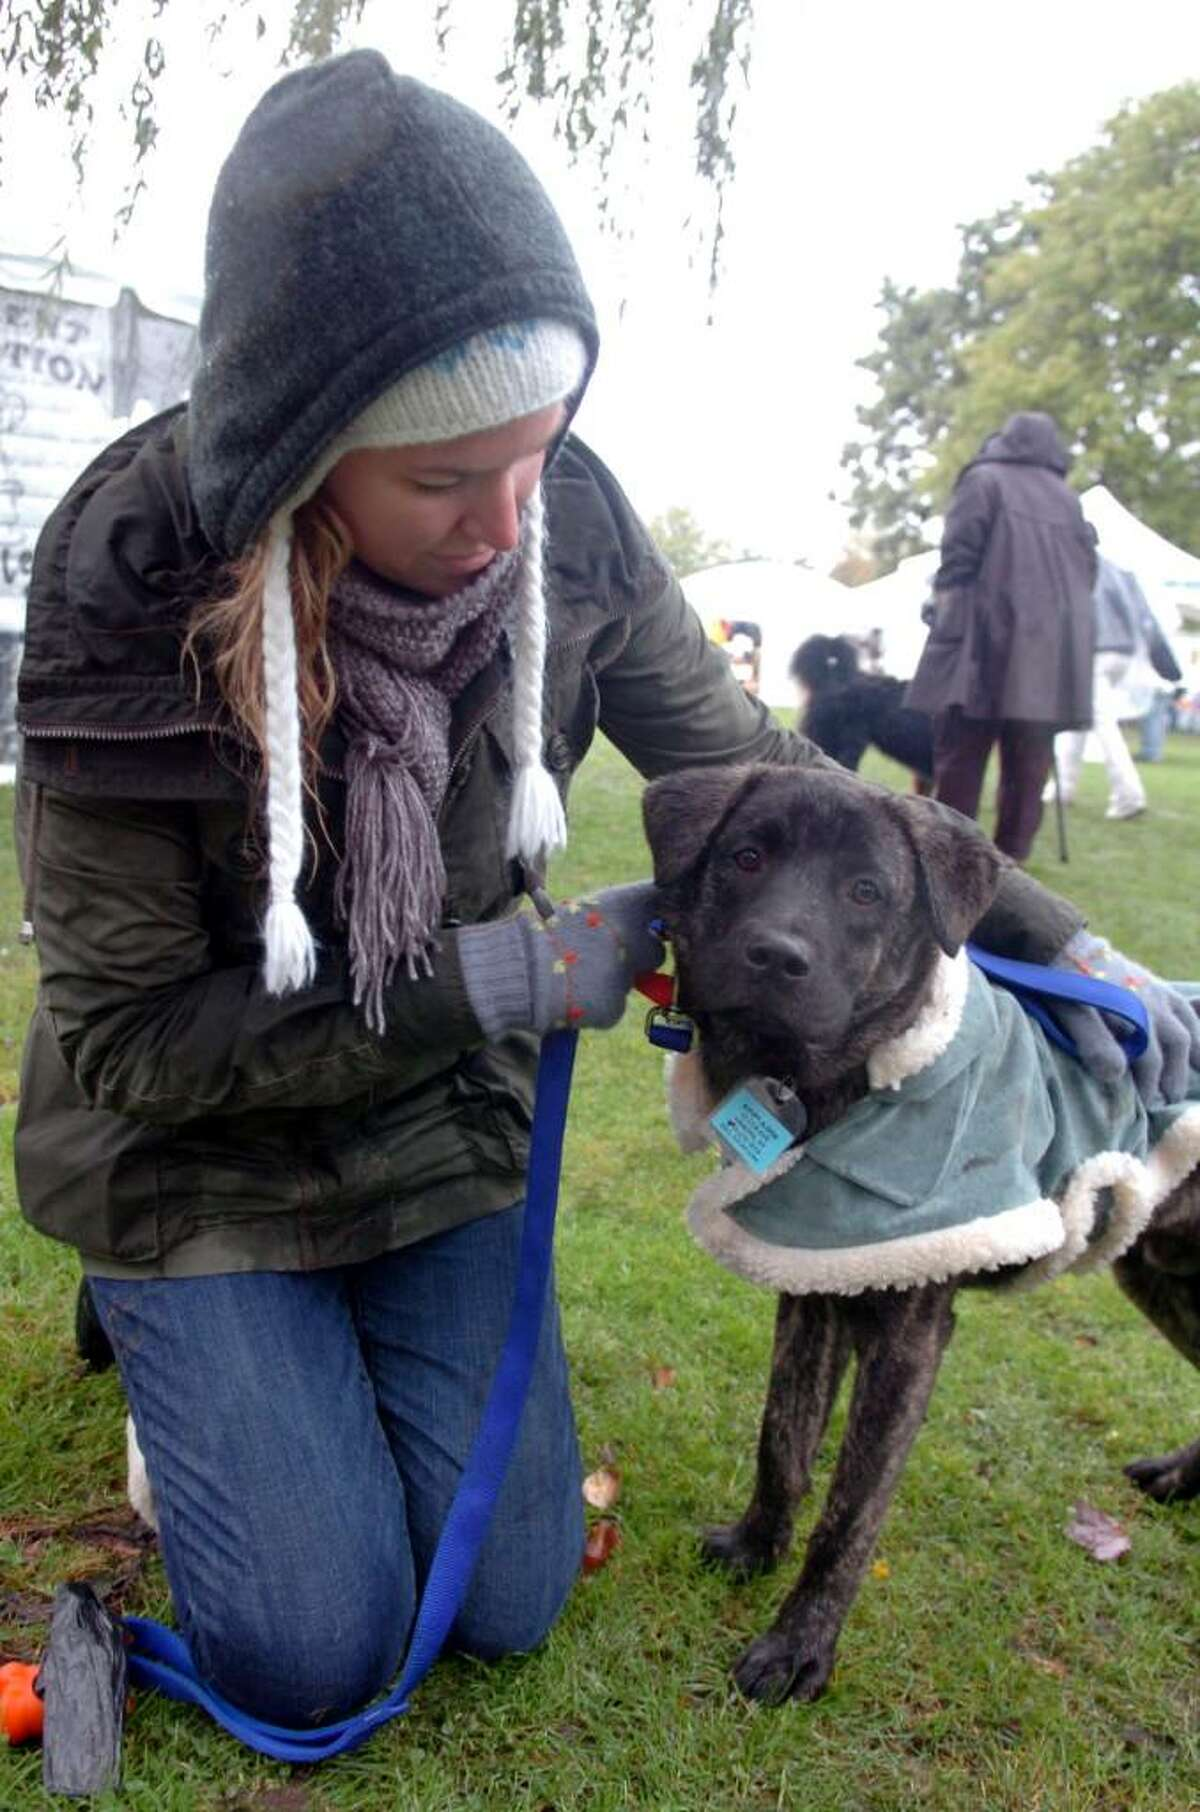 Greenwich, Oct. 18, 2009. Kaitlin Neary, a volunteer at Adopt-A-Dog, with Bishop, 11 months old. Kaitlin has decided to adopt Bishop.